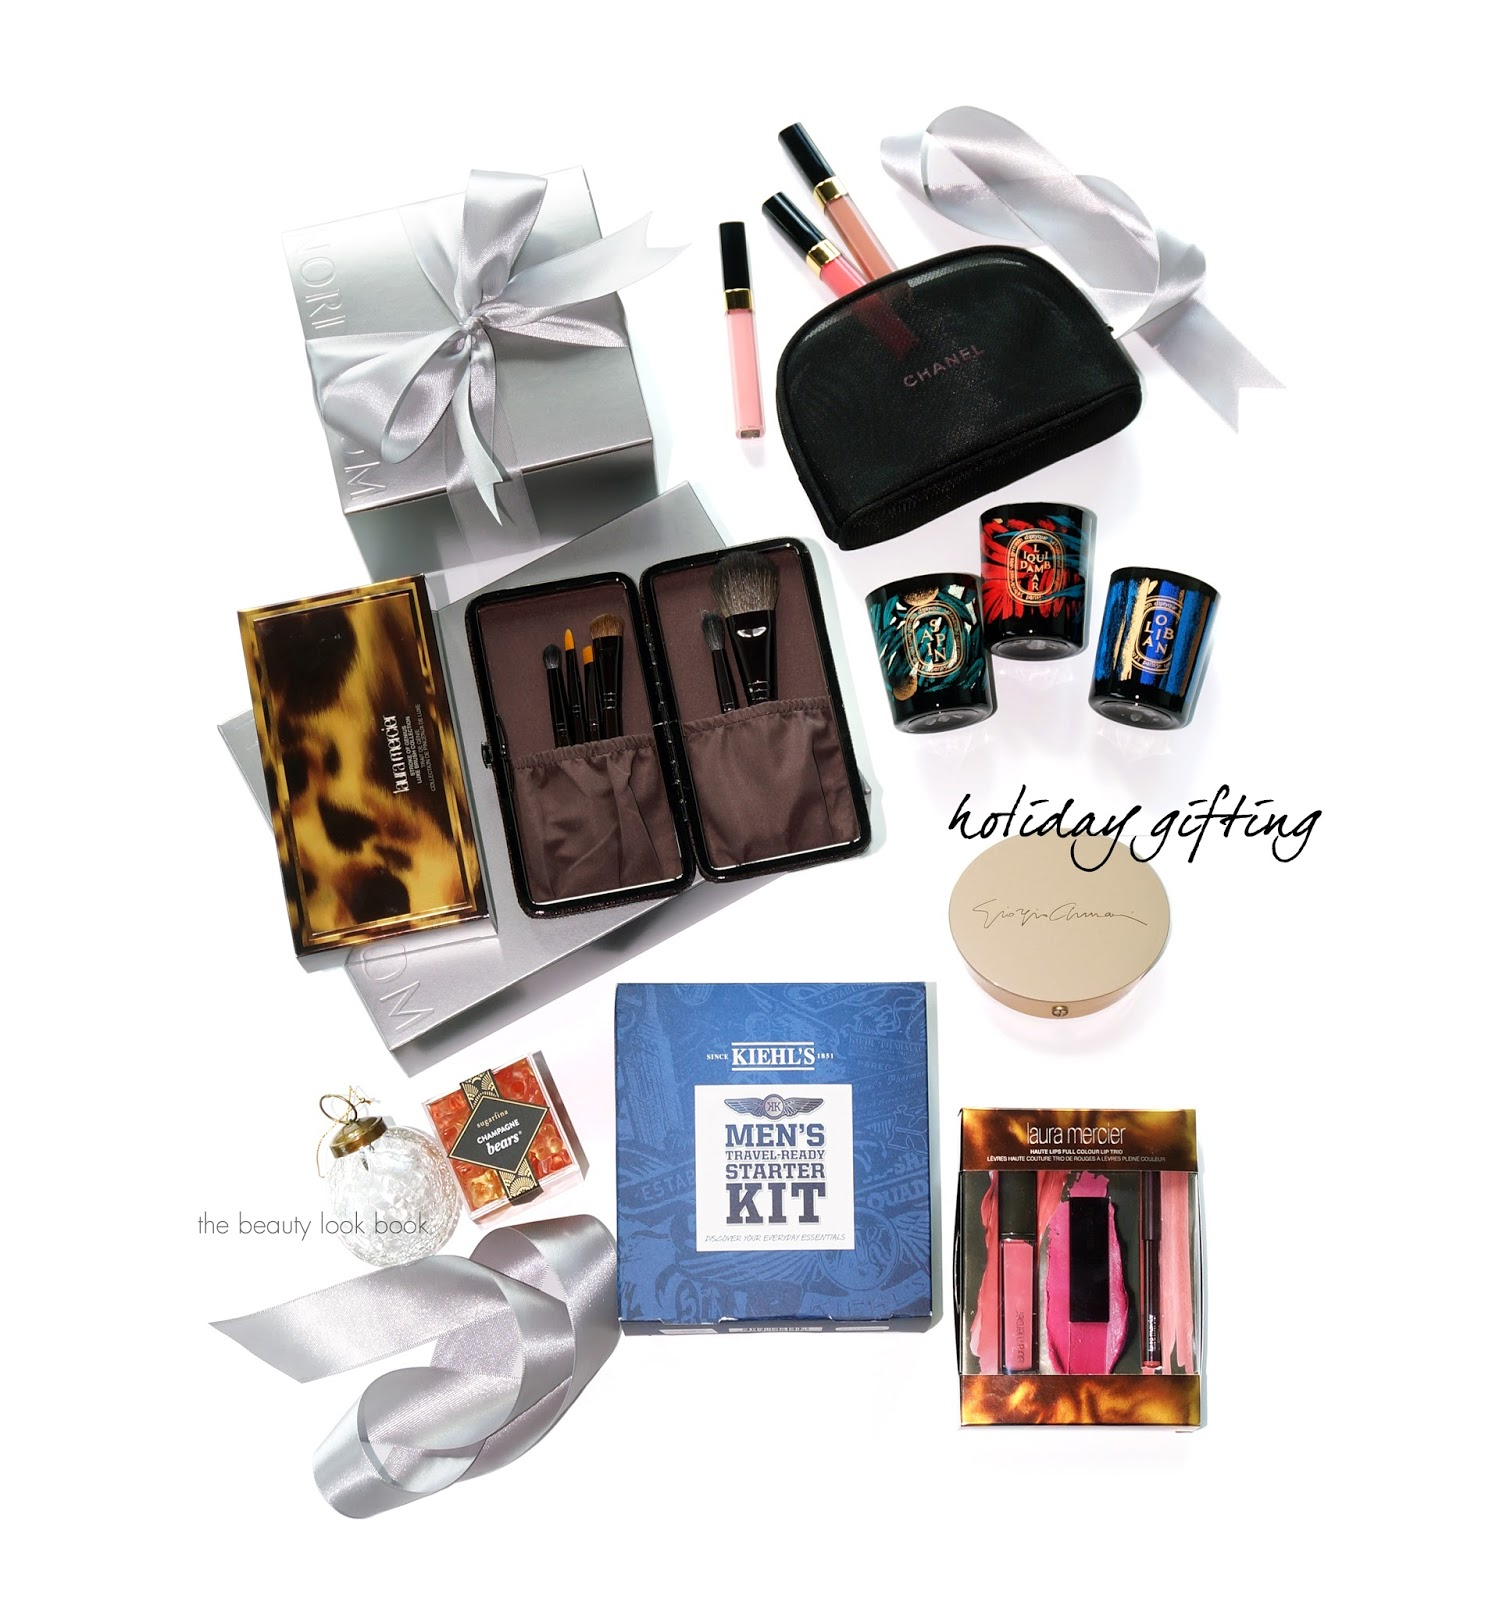 Holiday Beauty and Grooming Gifts from Nordstrom | The Beauty Look Book